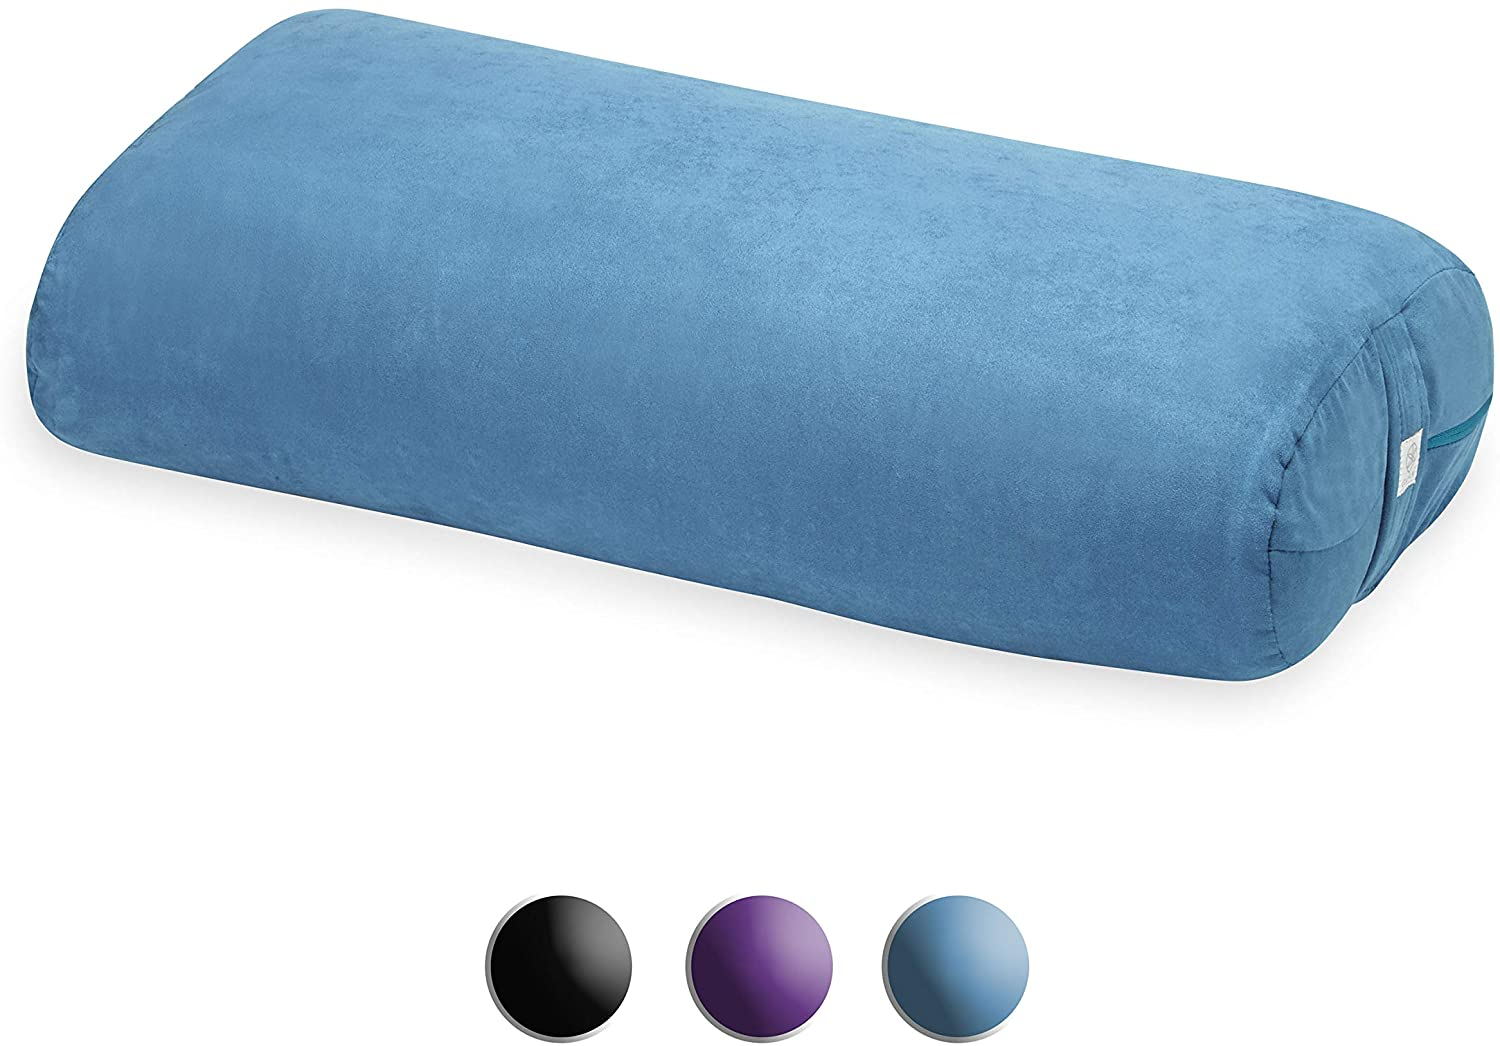 Yoga Bolster Rectangular Meditation Pillow Teal